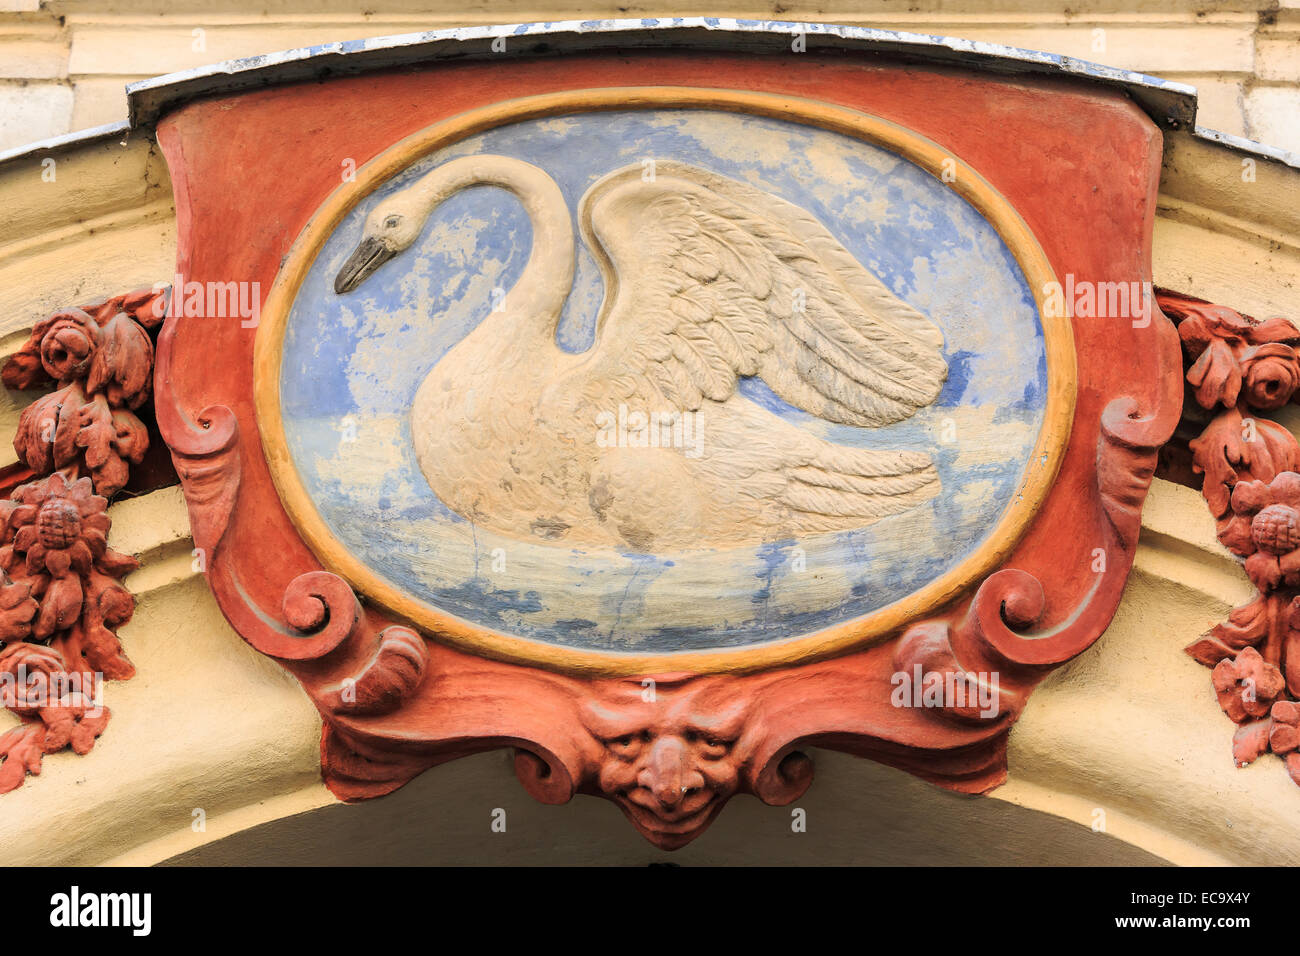 White swan, Prague, Czech Republic - Stock Image